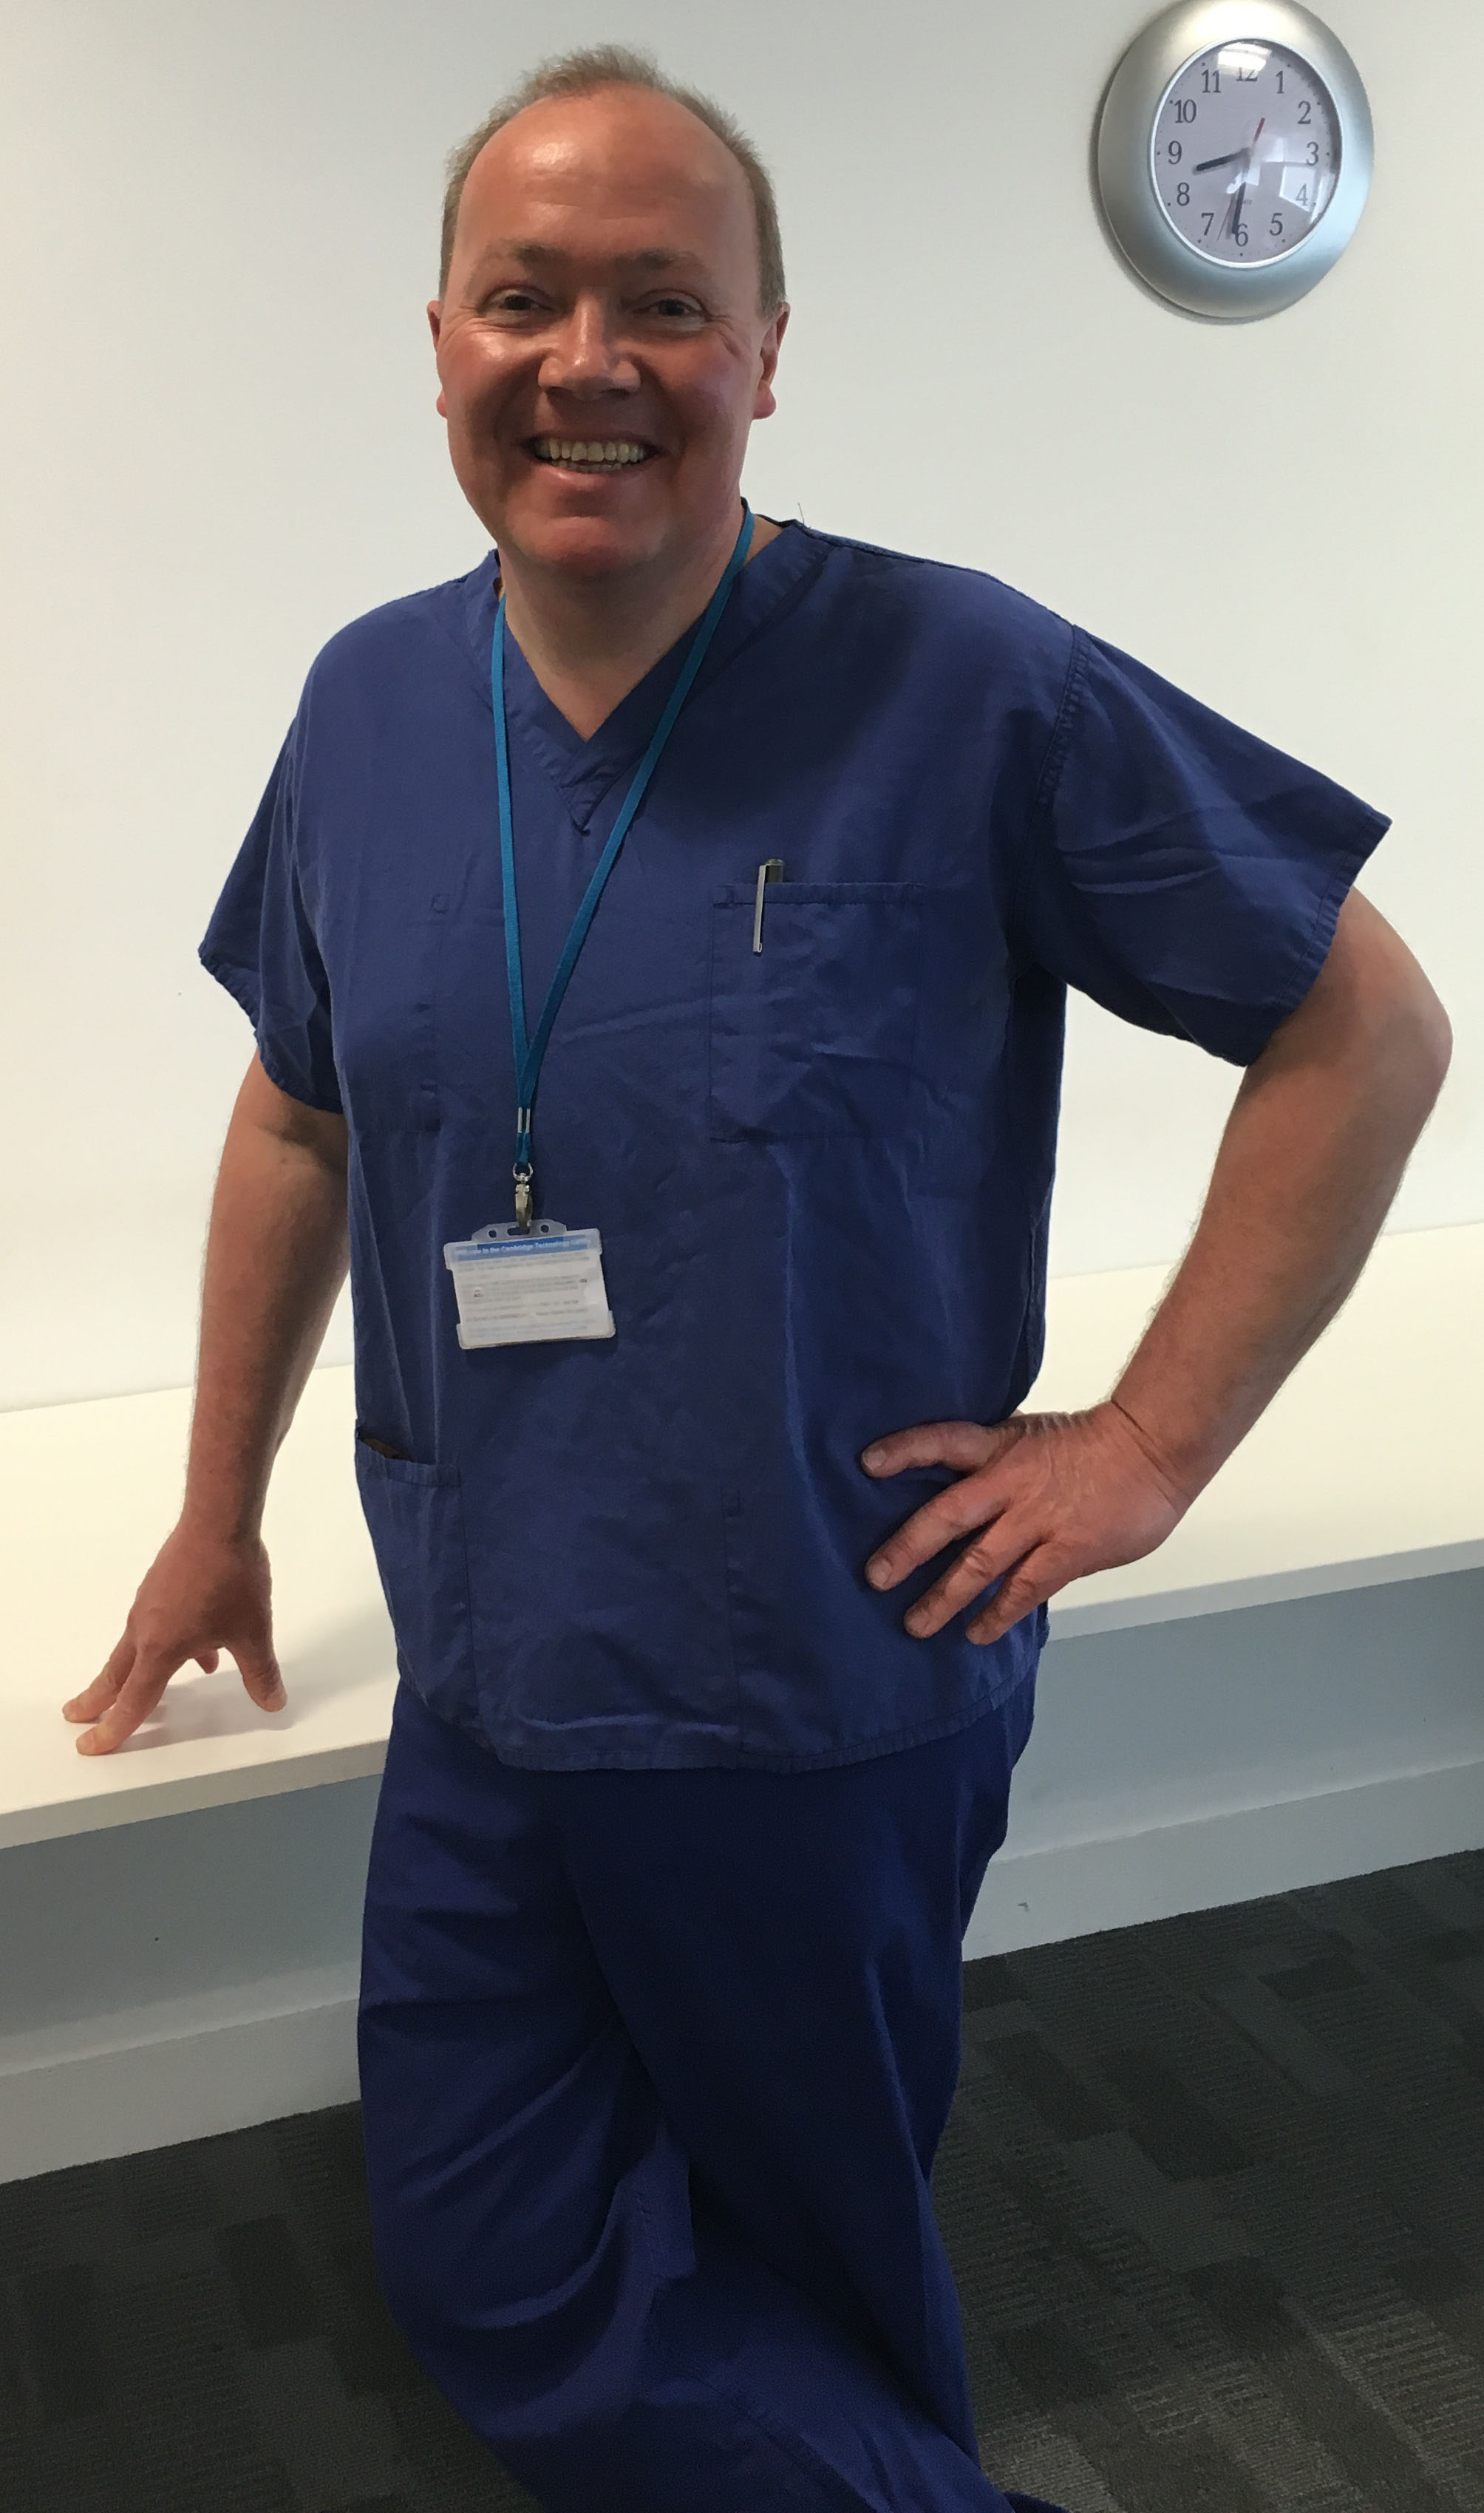 Mr John Skinner promoted to Professor | UCL Division of Surgery and